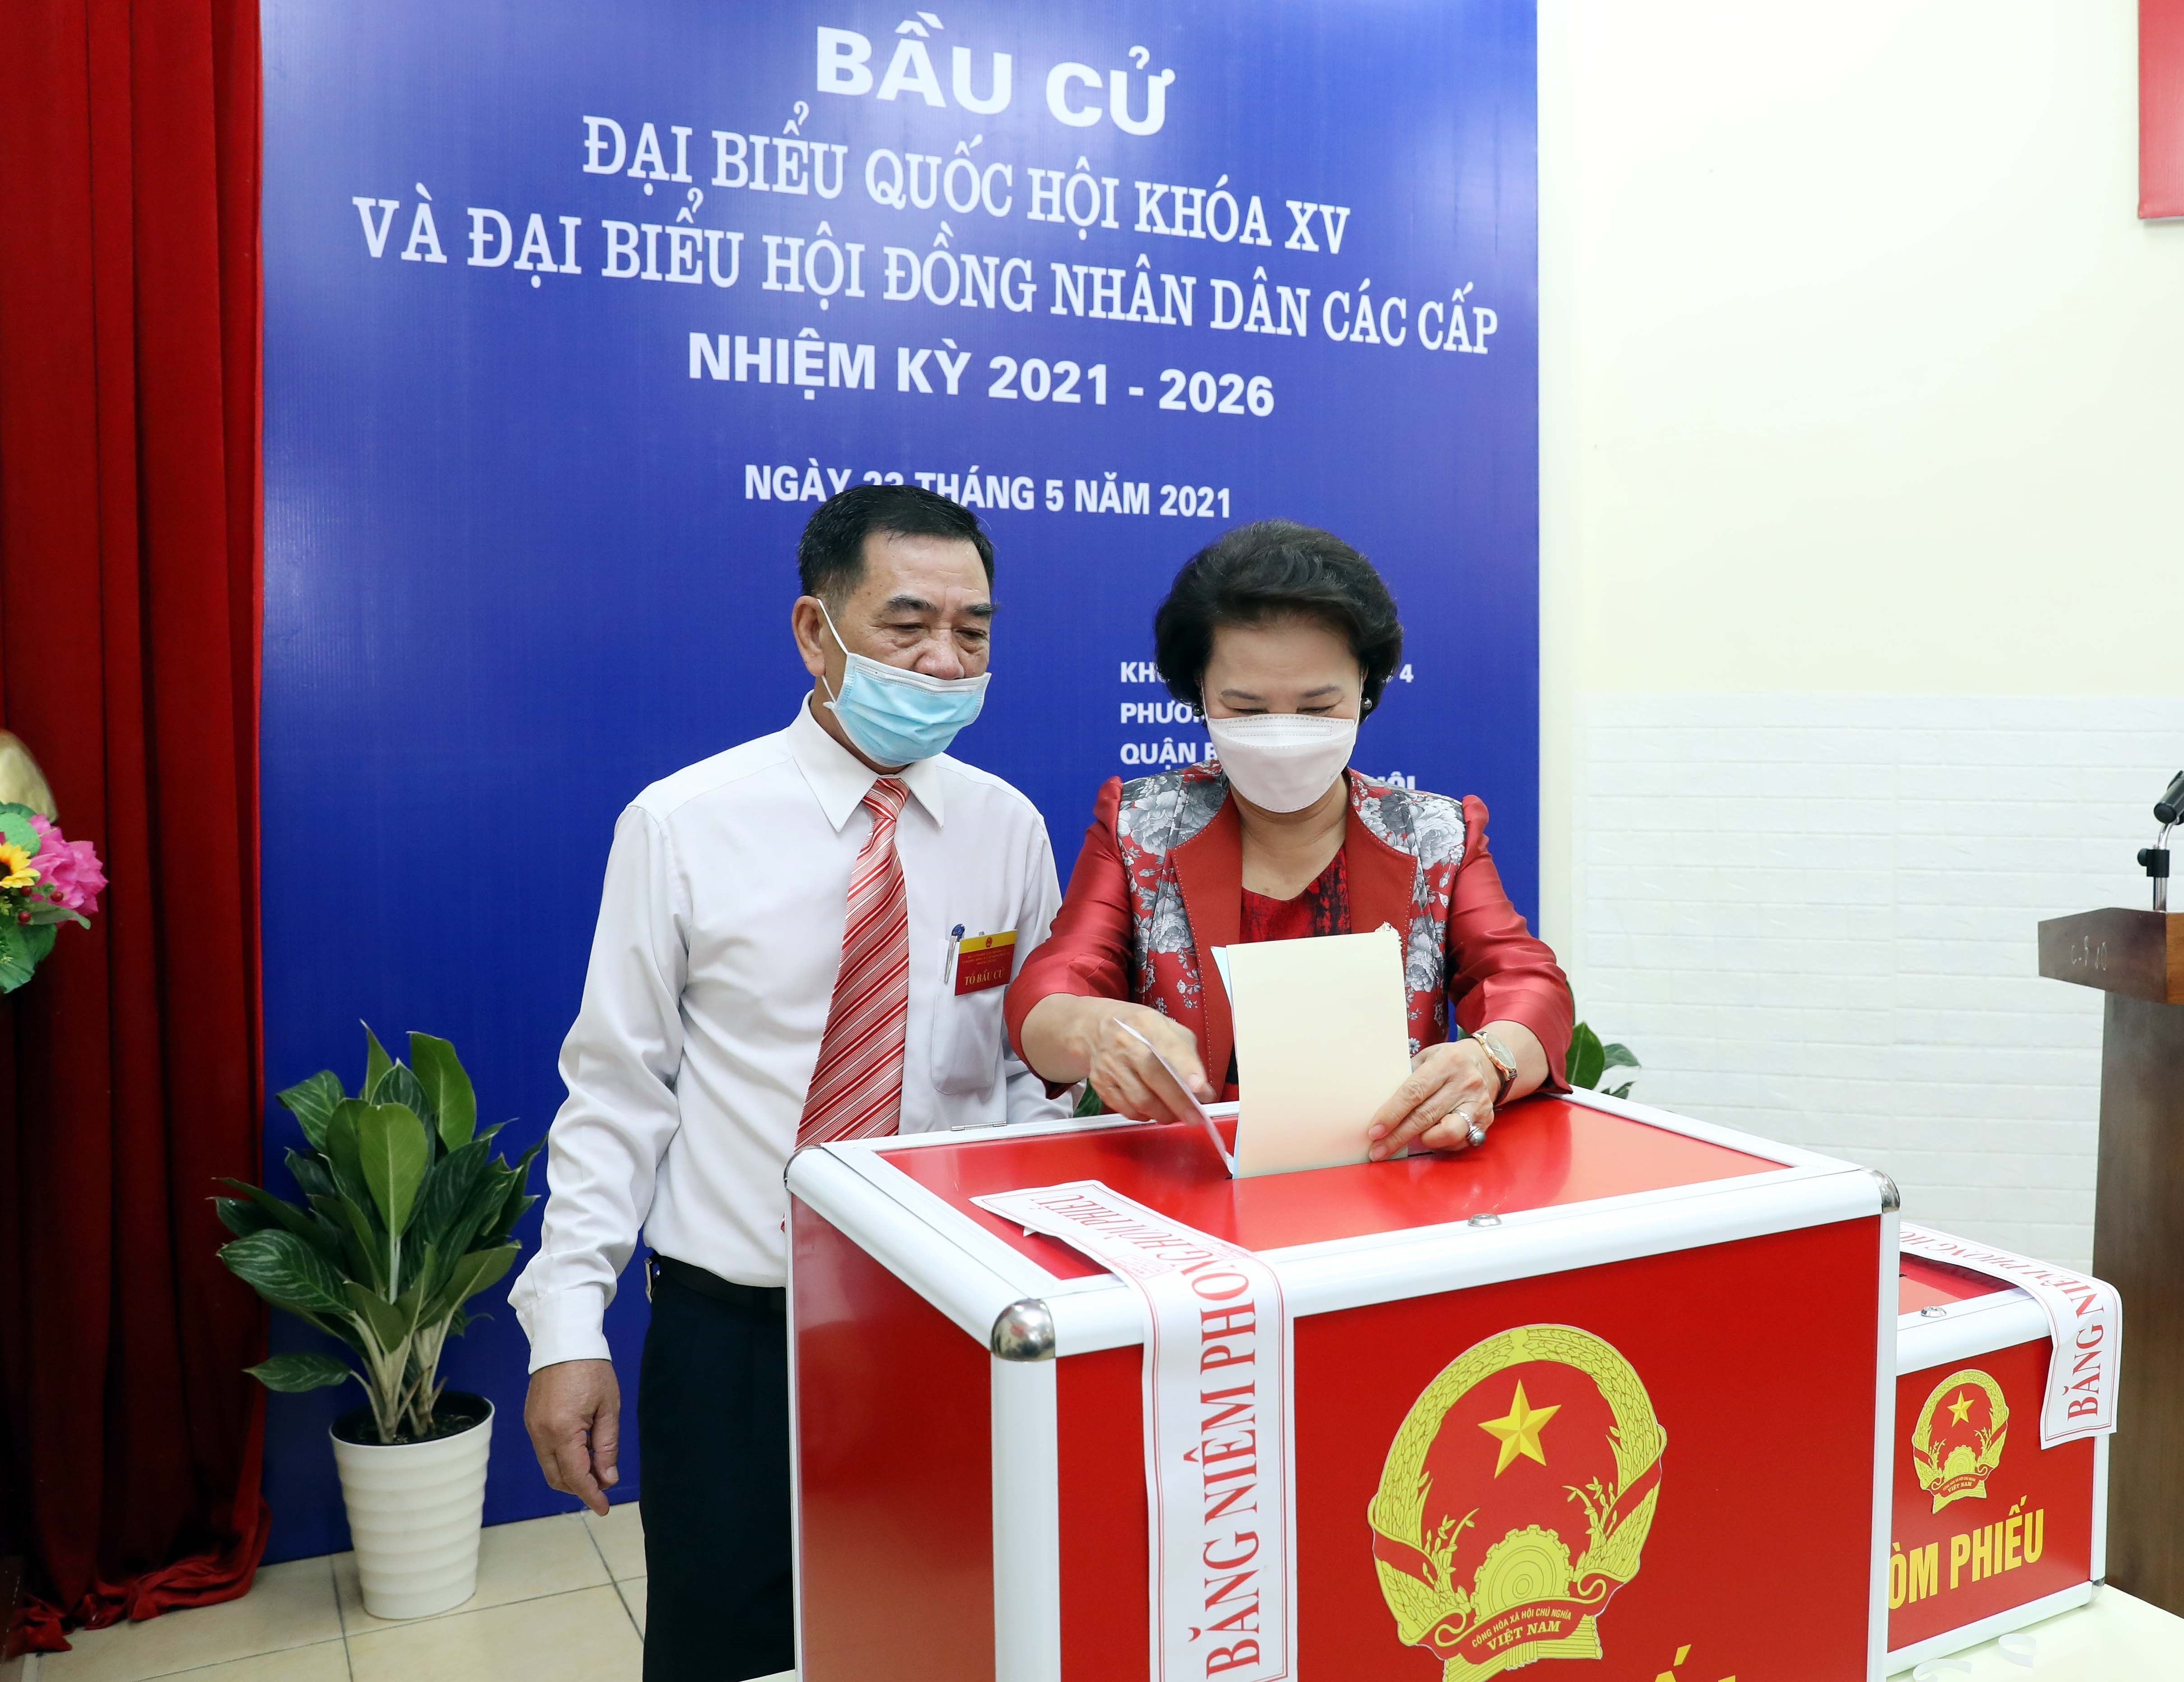 Voters nationwide cast ballots hinh anh 5